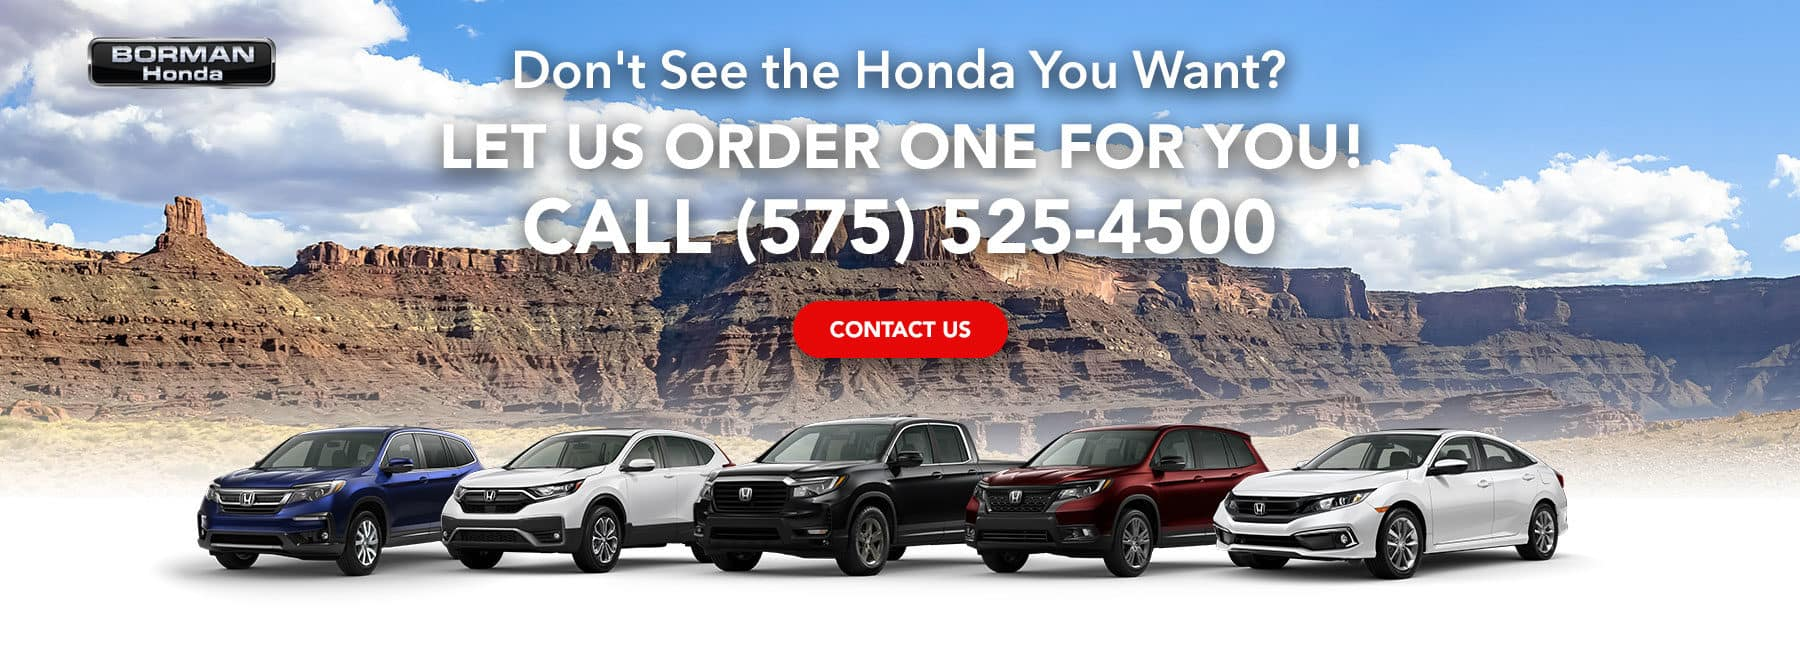 Don't See the Honda You Want? Let Us Order One For You! Call (575) 525-4500